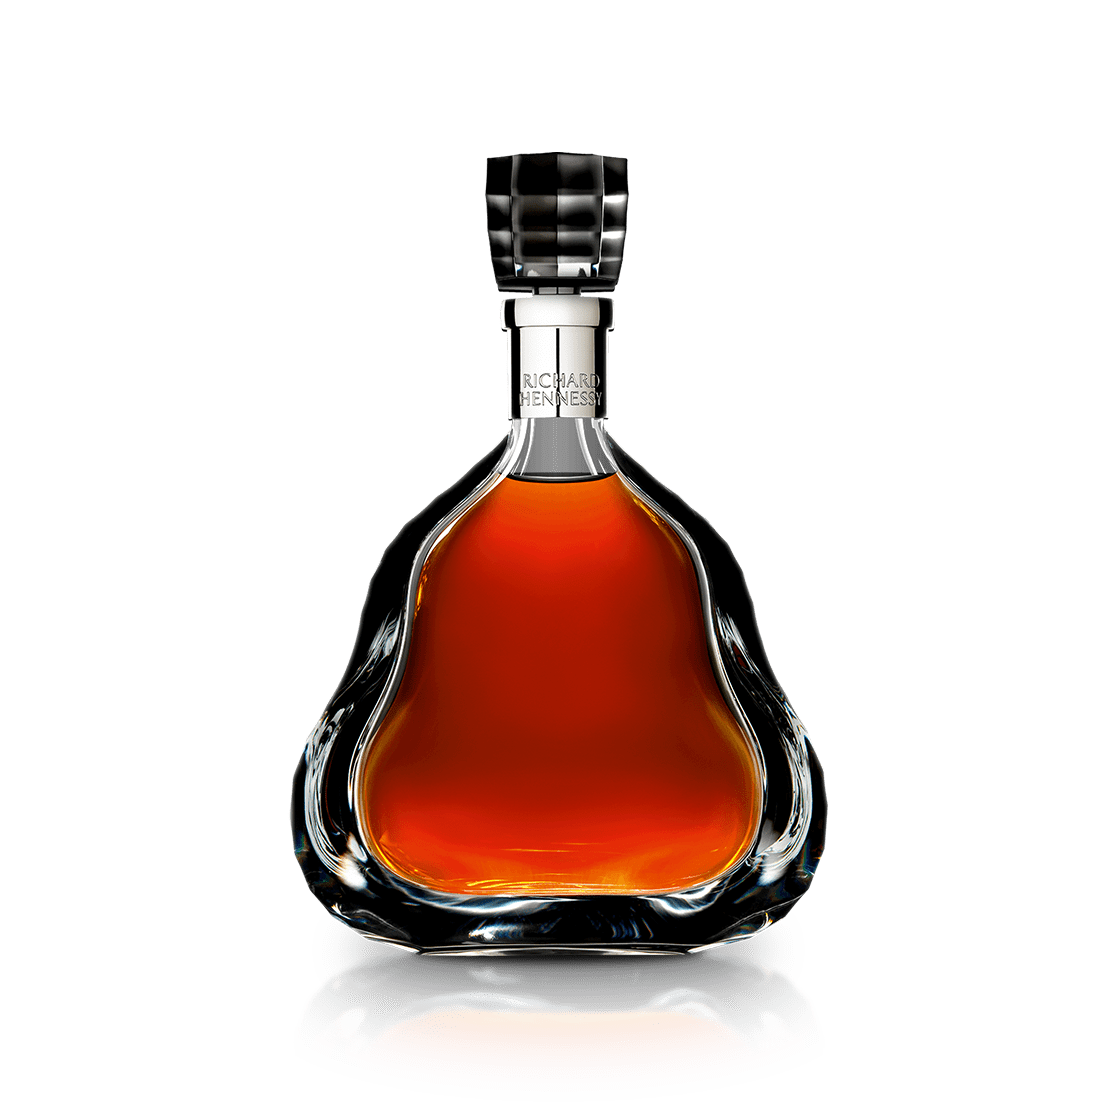 Hennessy privilege bottle label png. Richard a continuing dialogue